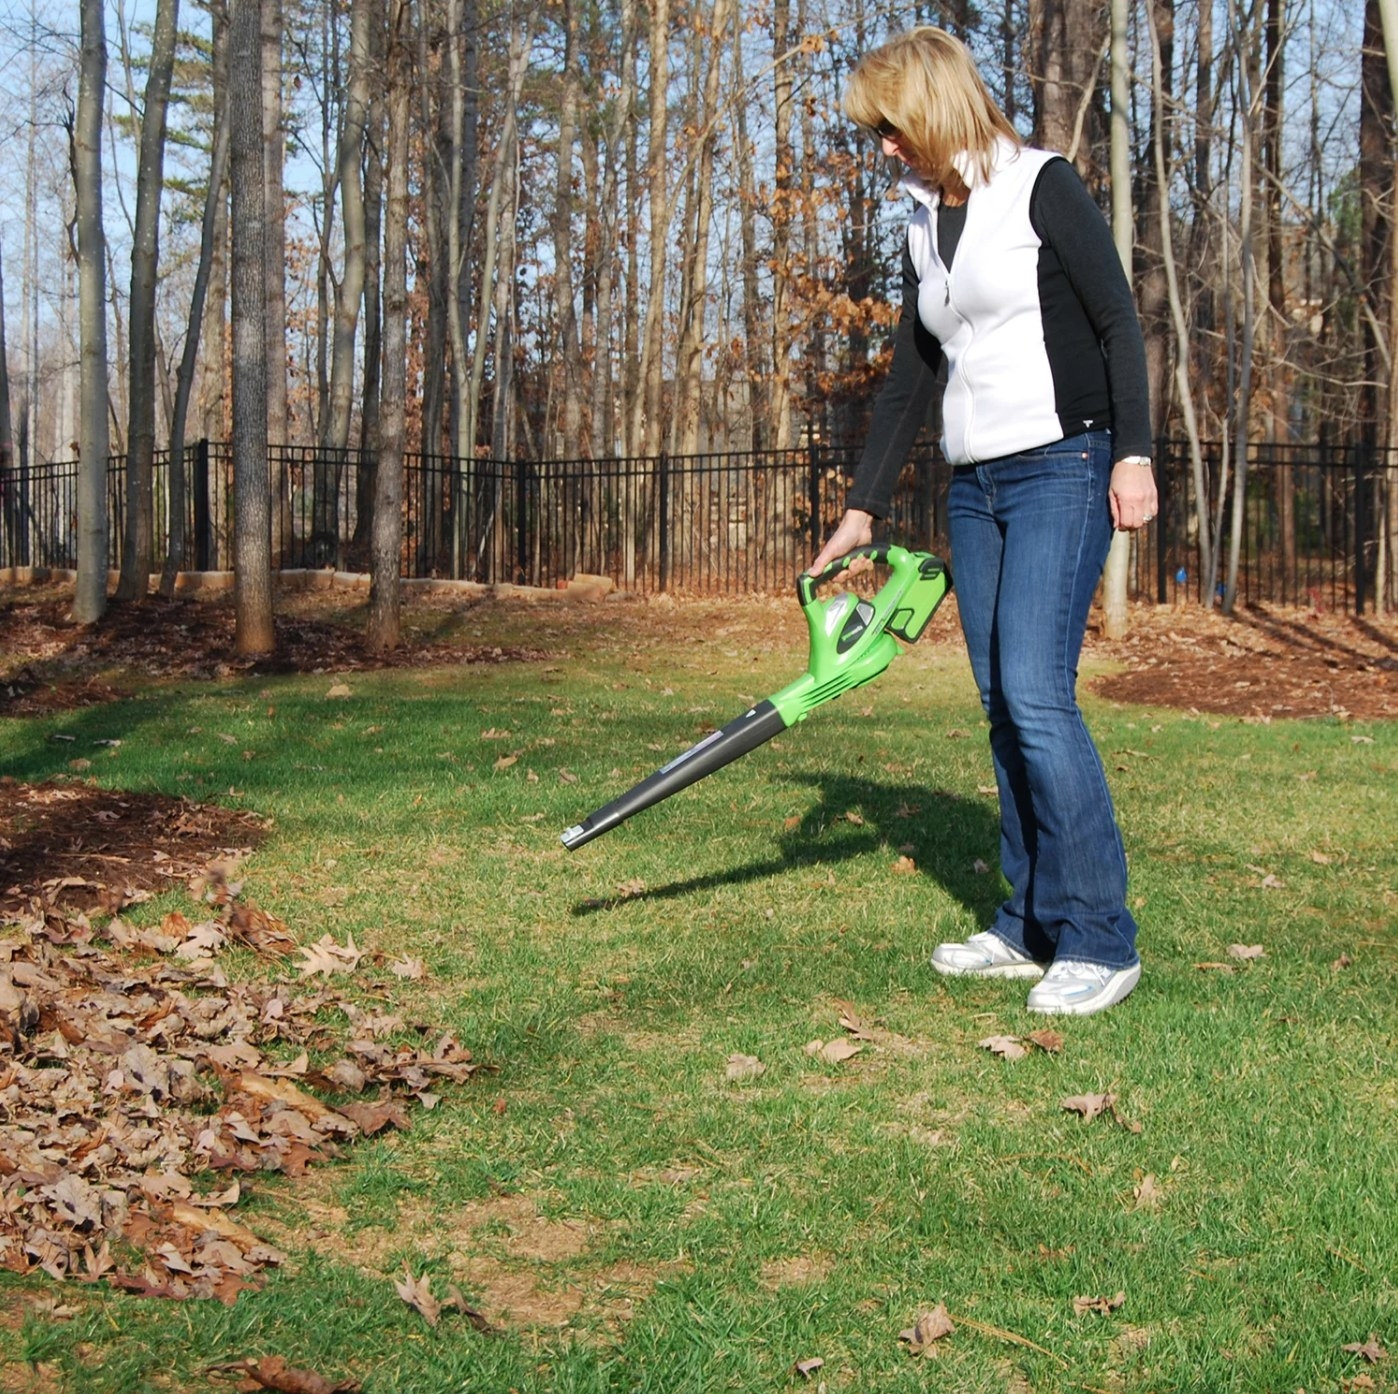 The lawn blower in lime green being held by a model blowing leaves